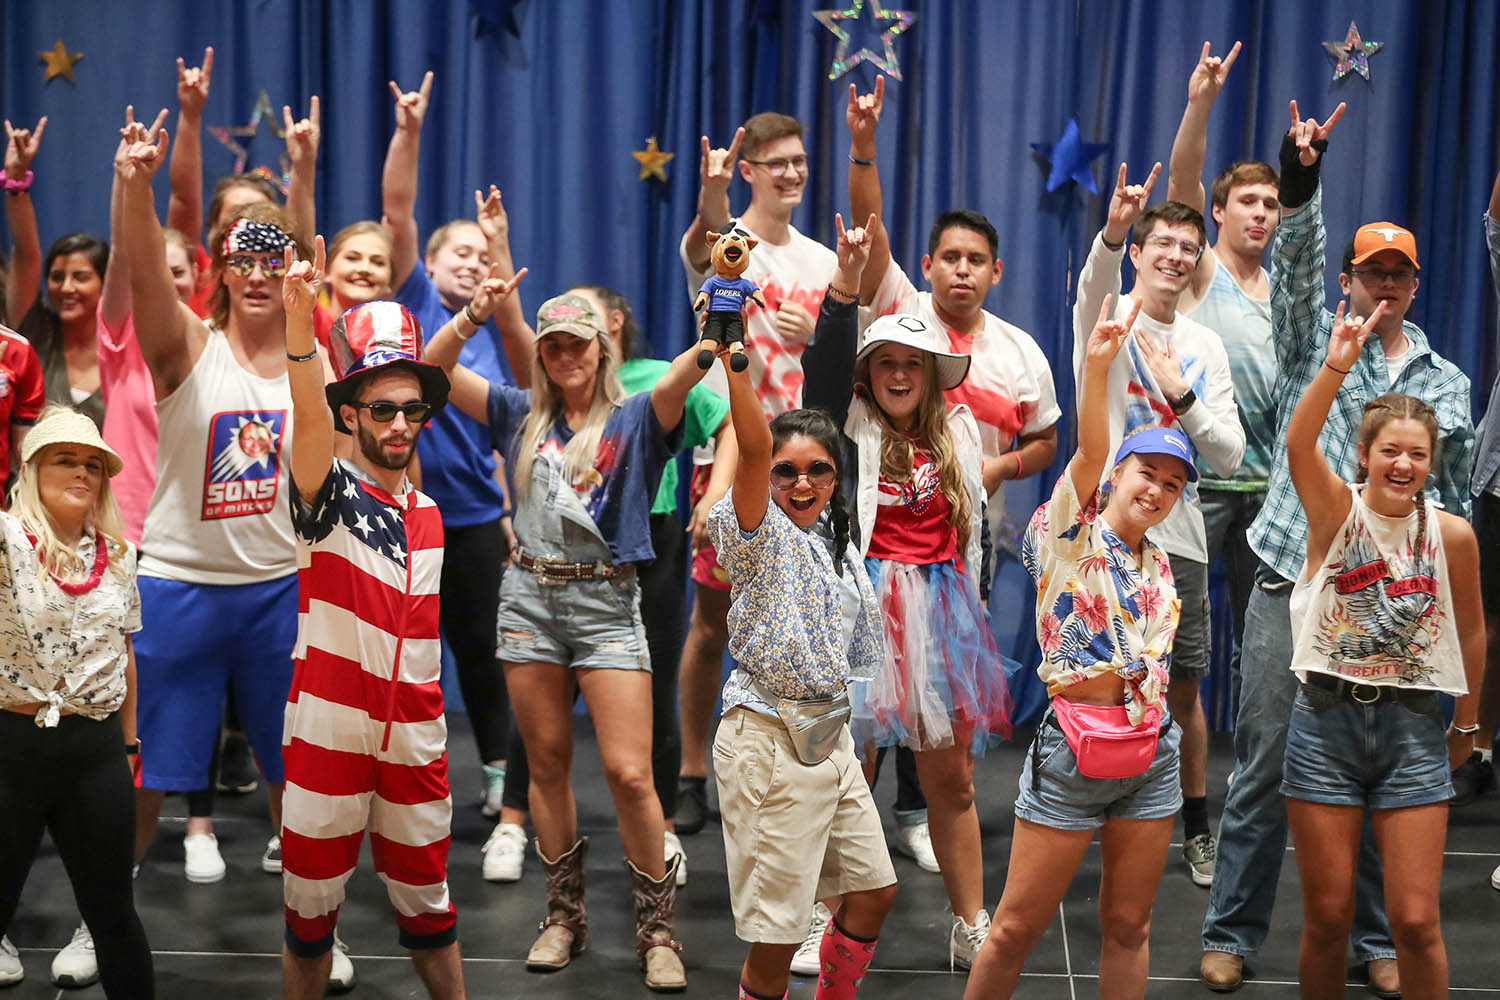 One of the most popular UNK homecoming events, the lip-sync contest is scheduled for 7 p.m. Thursday in the Health and Sports Center.